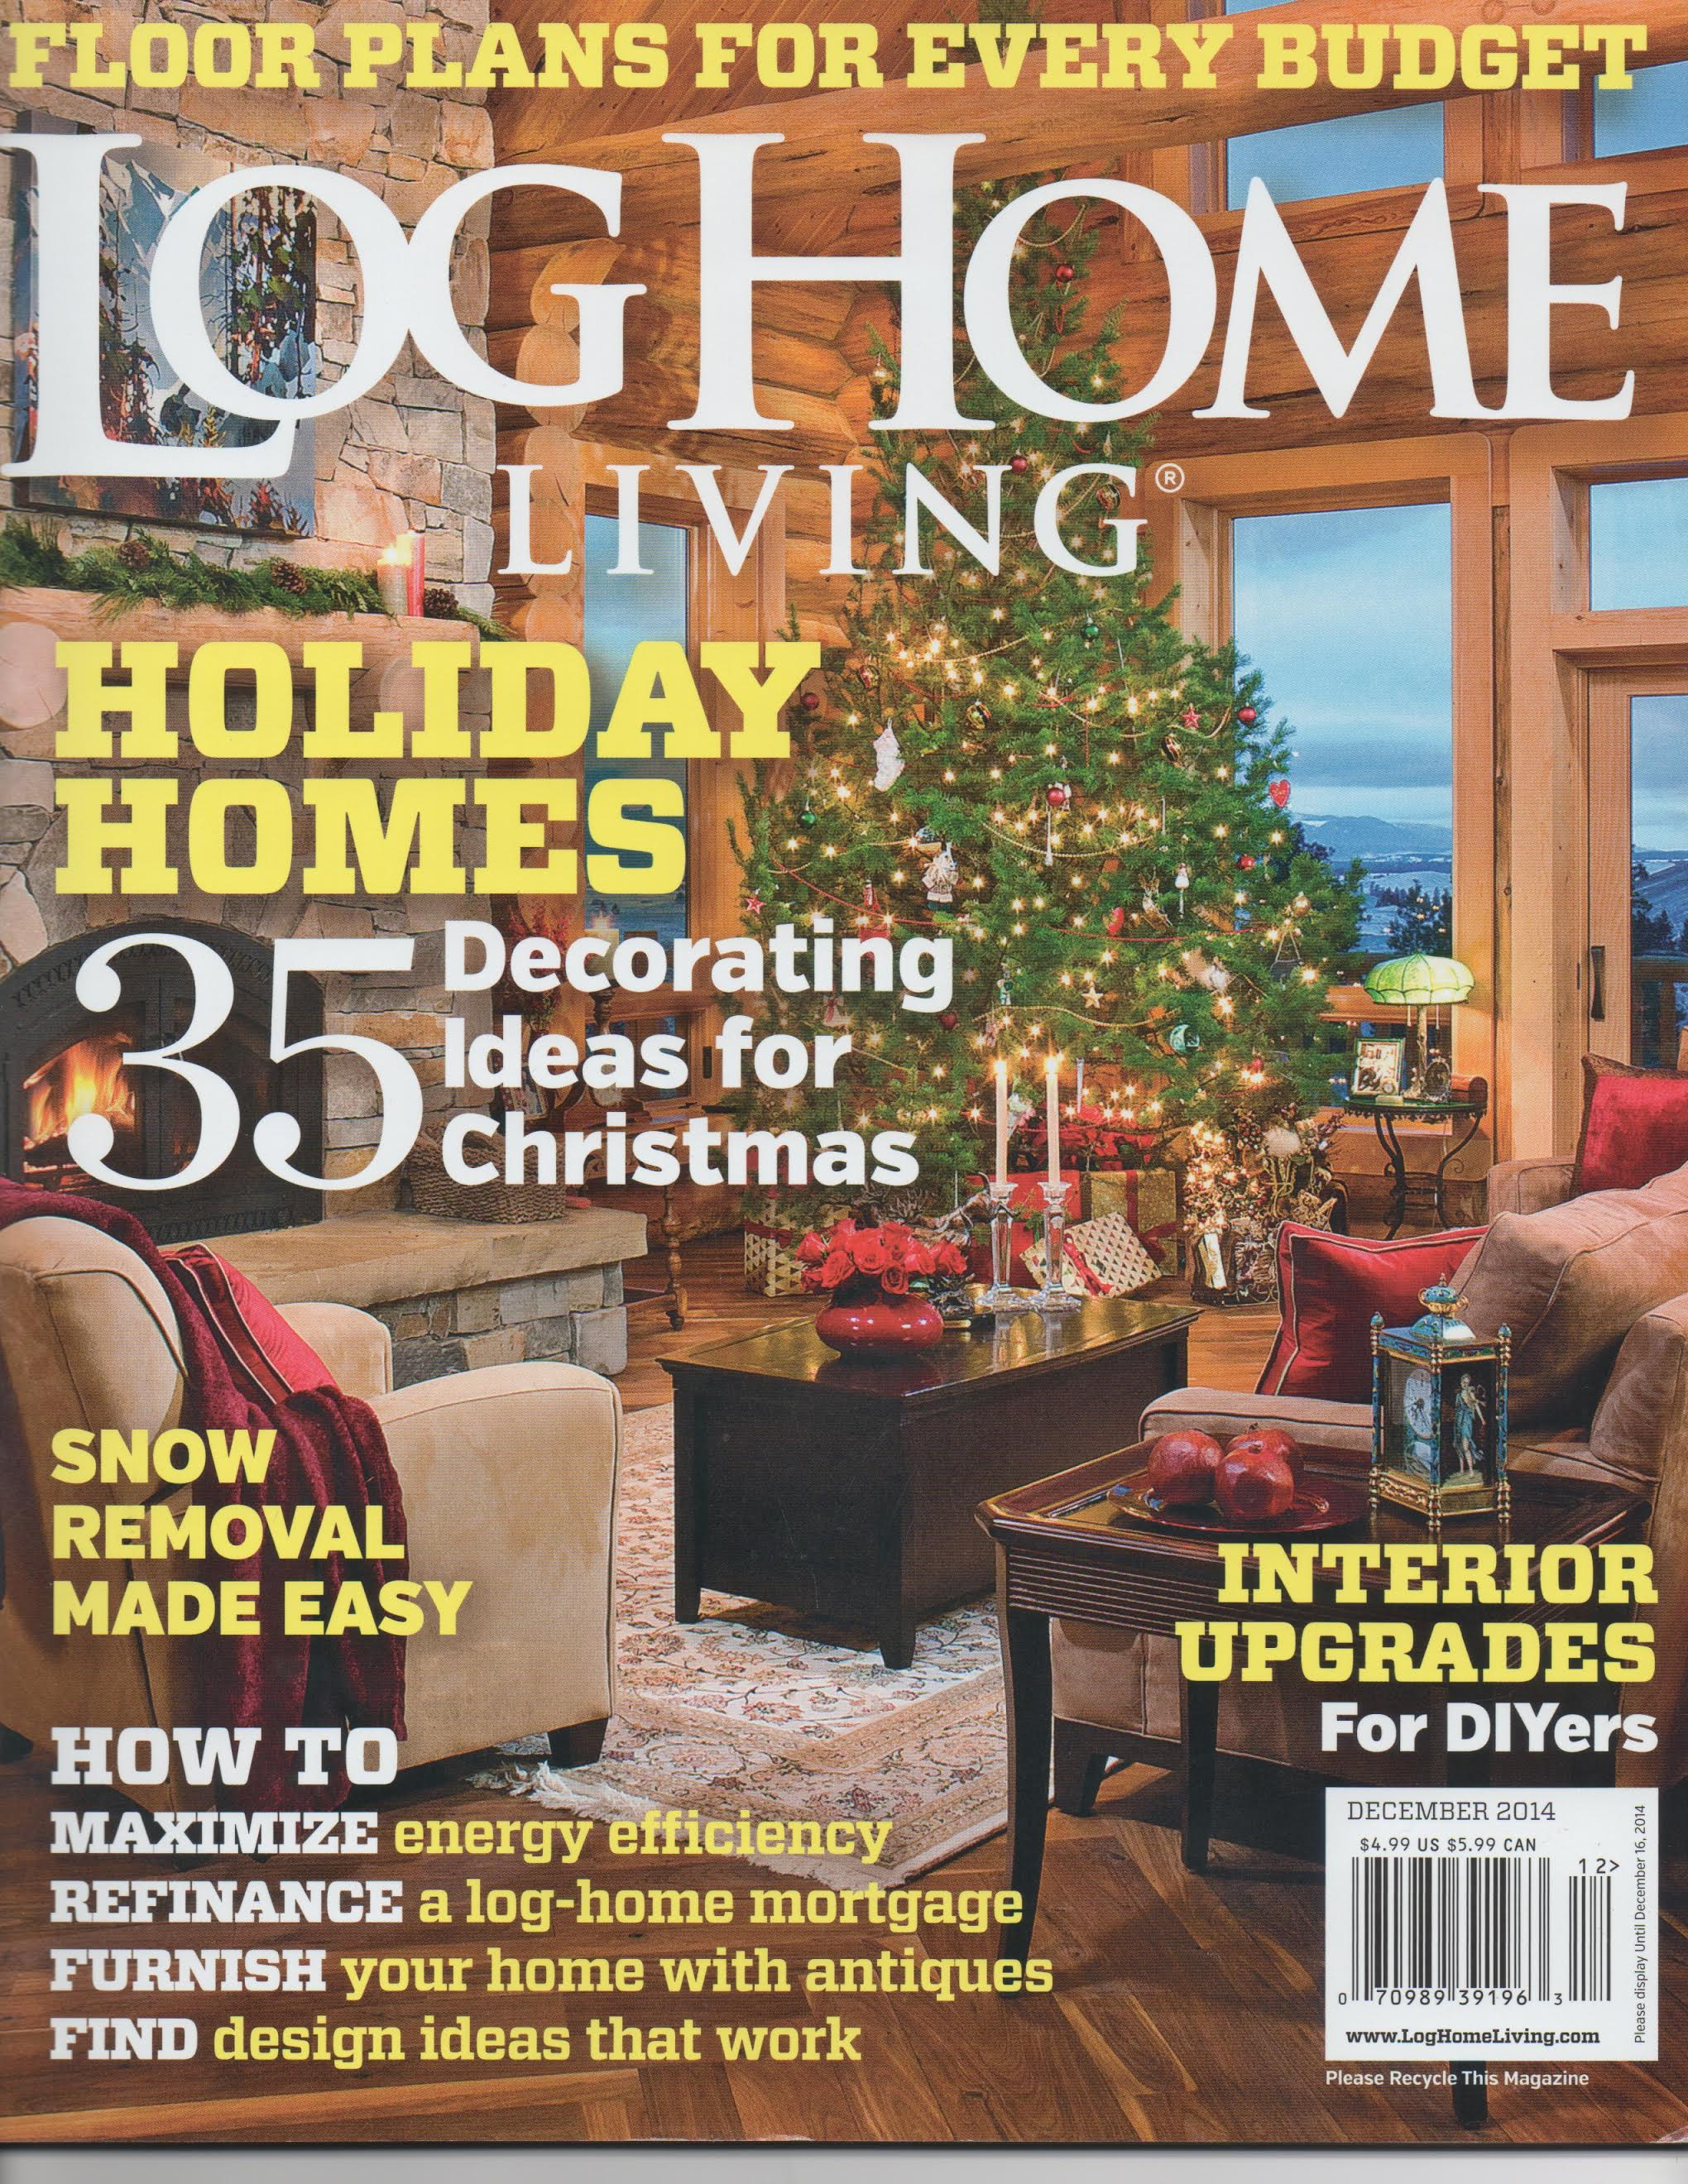 log home living magazine - december 2014 - rcm cad design drafting ltd.